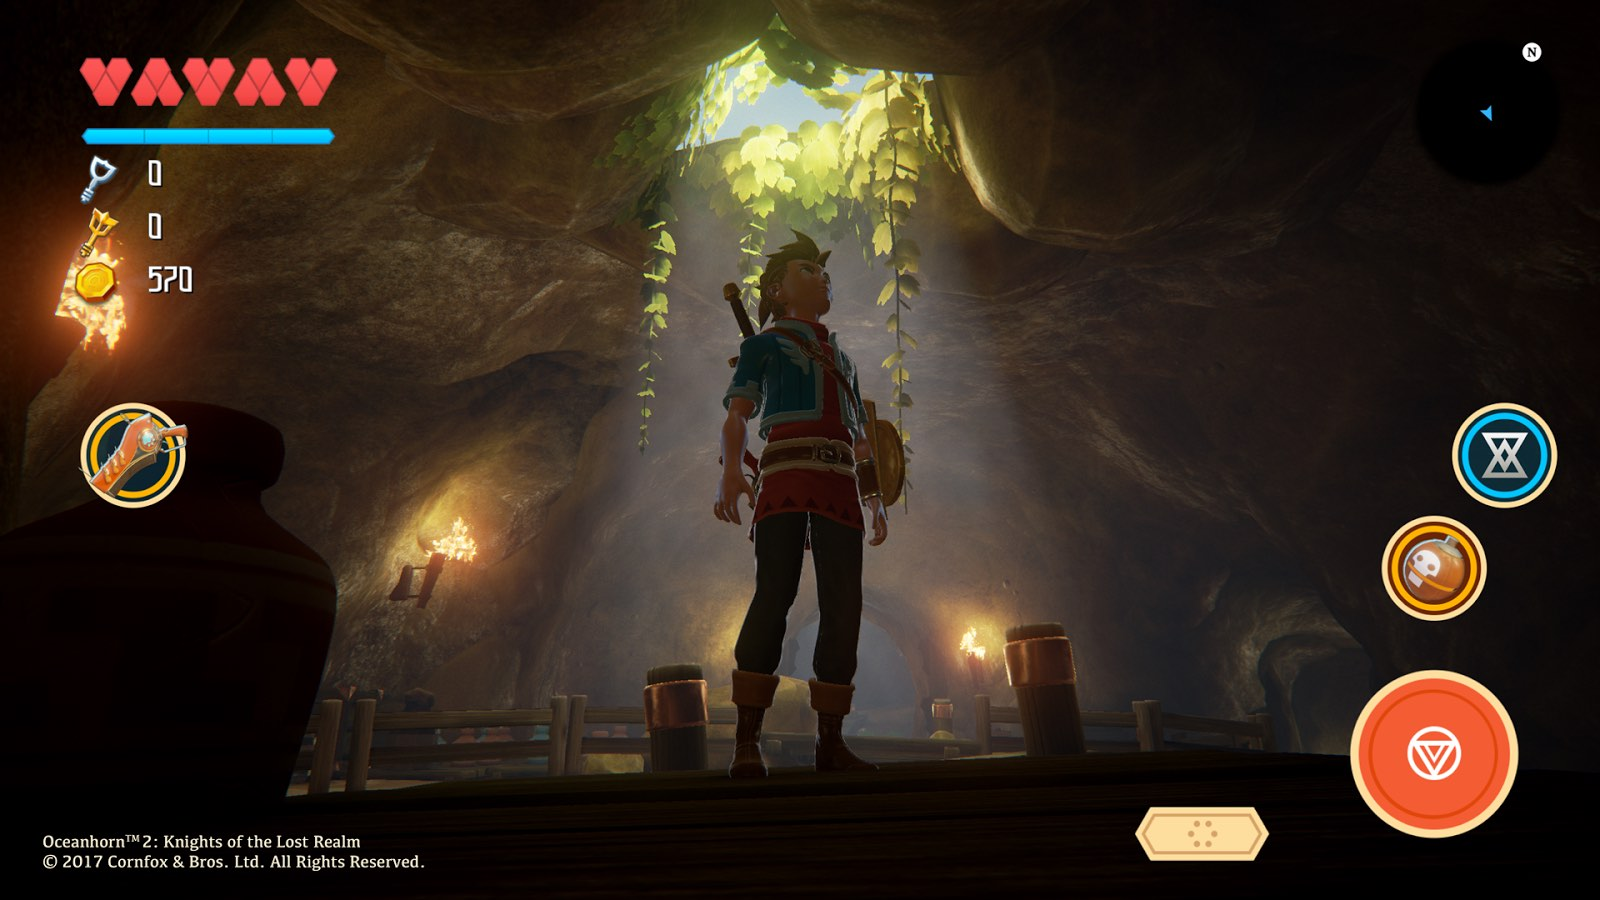 oceanhorn2_screens_0001